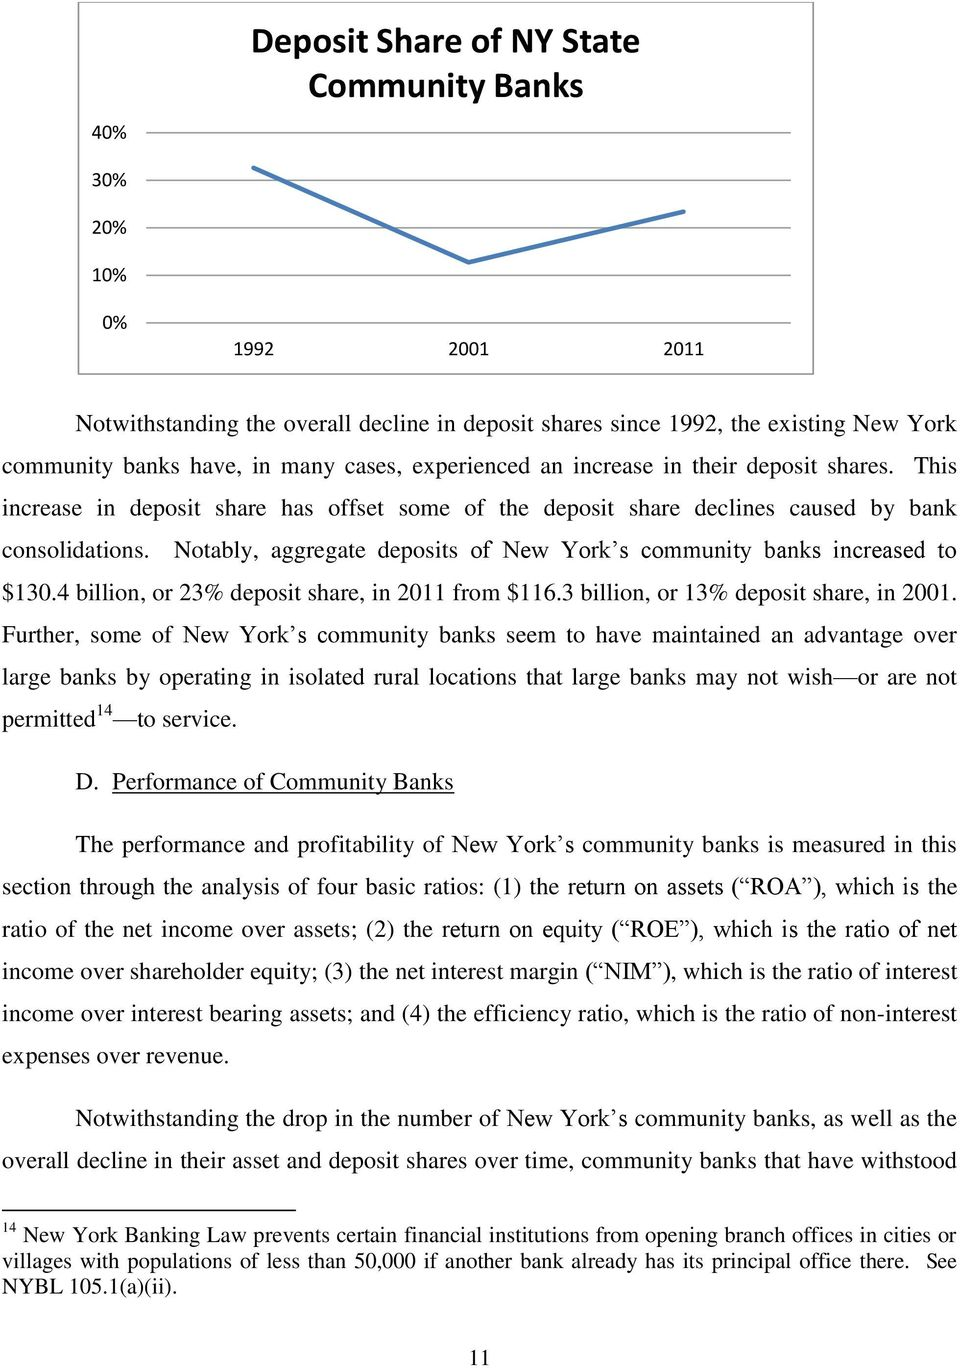 Notably, aggregate deposits of New York s community banks increased to $130.4 billion, or 23% deposit share, in 2011 from $116.3 billion, or 13% deposit share, in 2001.